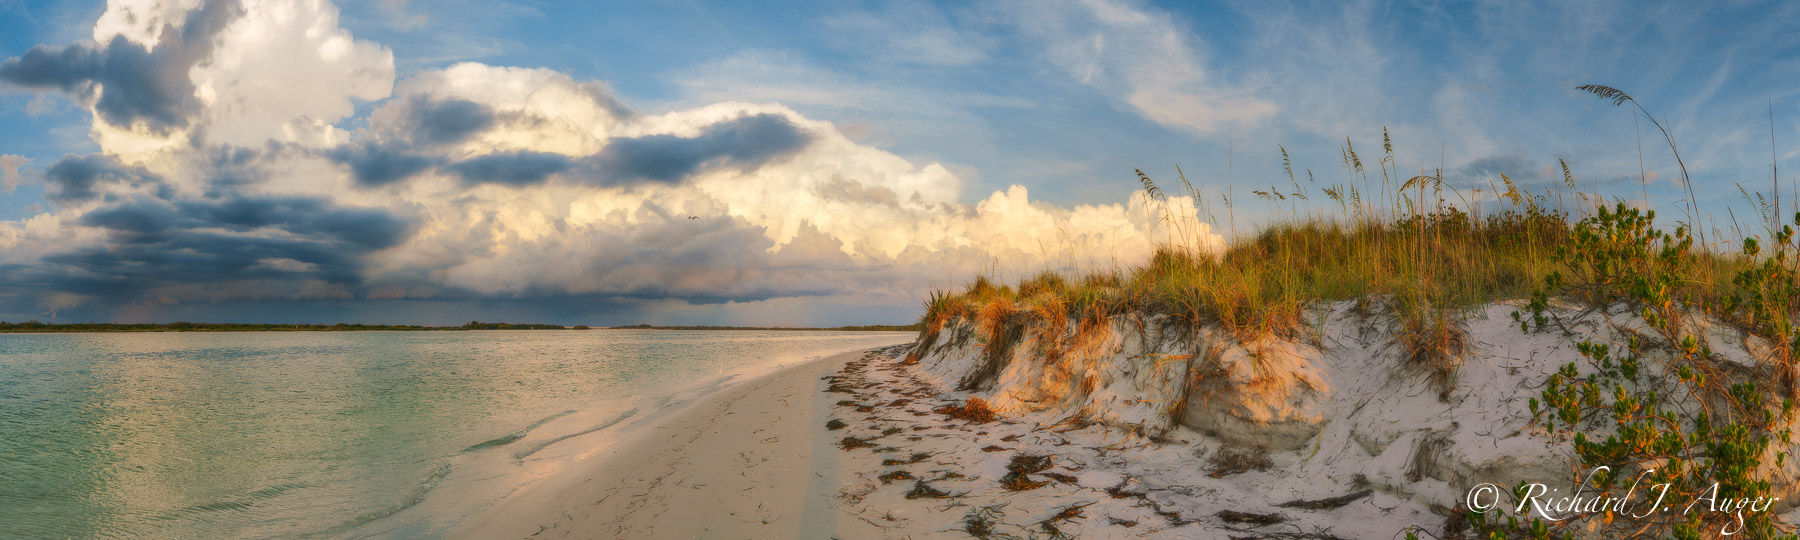 Fort De Soto Park, Florida, Pinellas County, St Petersburg, Beach, Sand Dunes, Ocean, Sunset, Photograph, Photographer, Photo, Landscape, Richard Auger